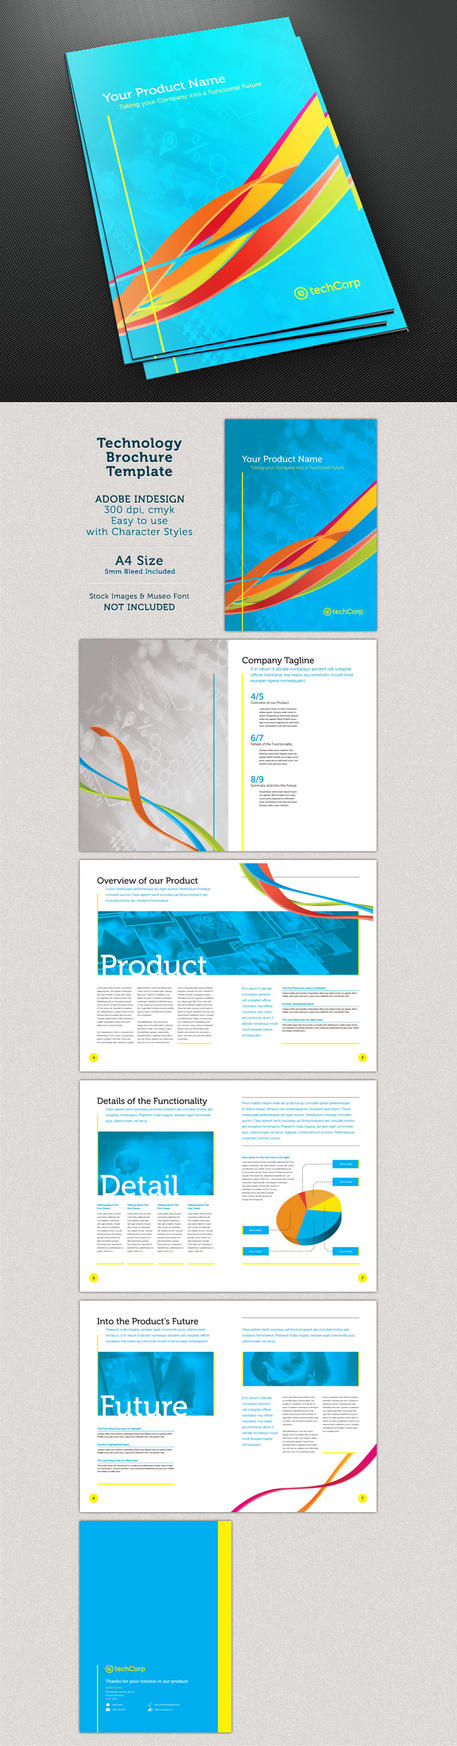 Whirls technology a4 10 page brochure template by for Four page brochure template